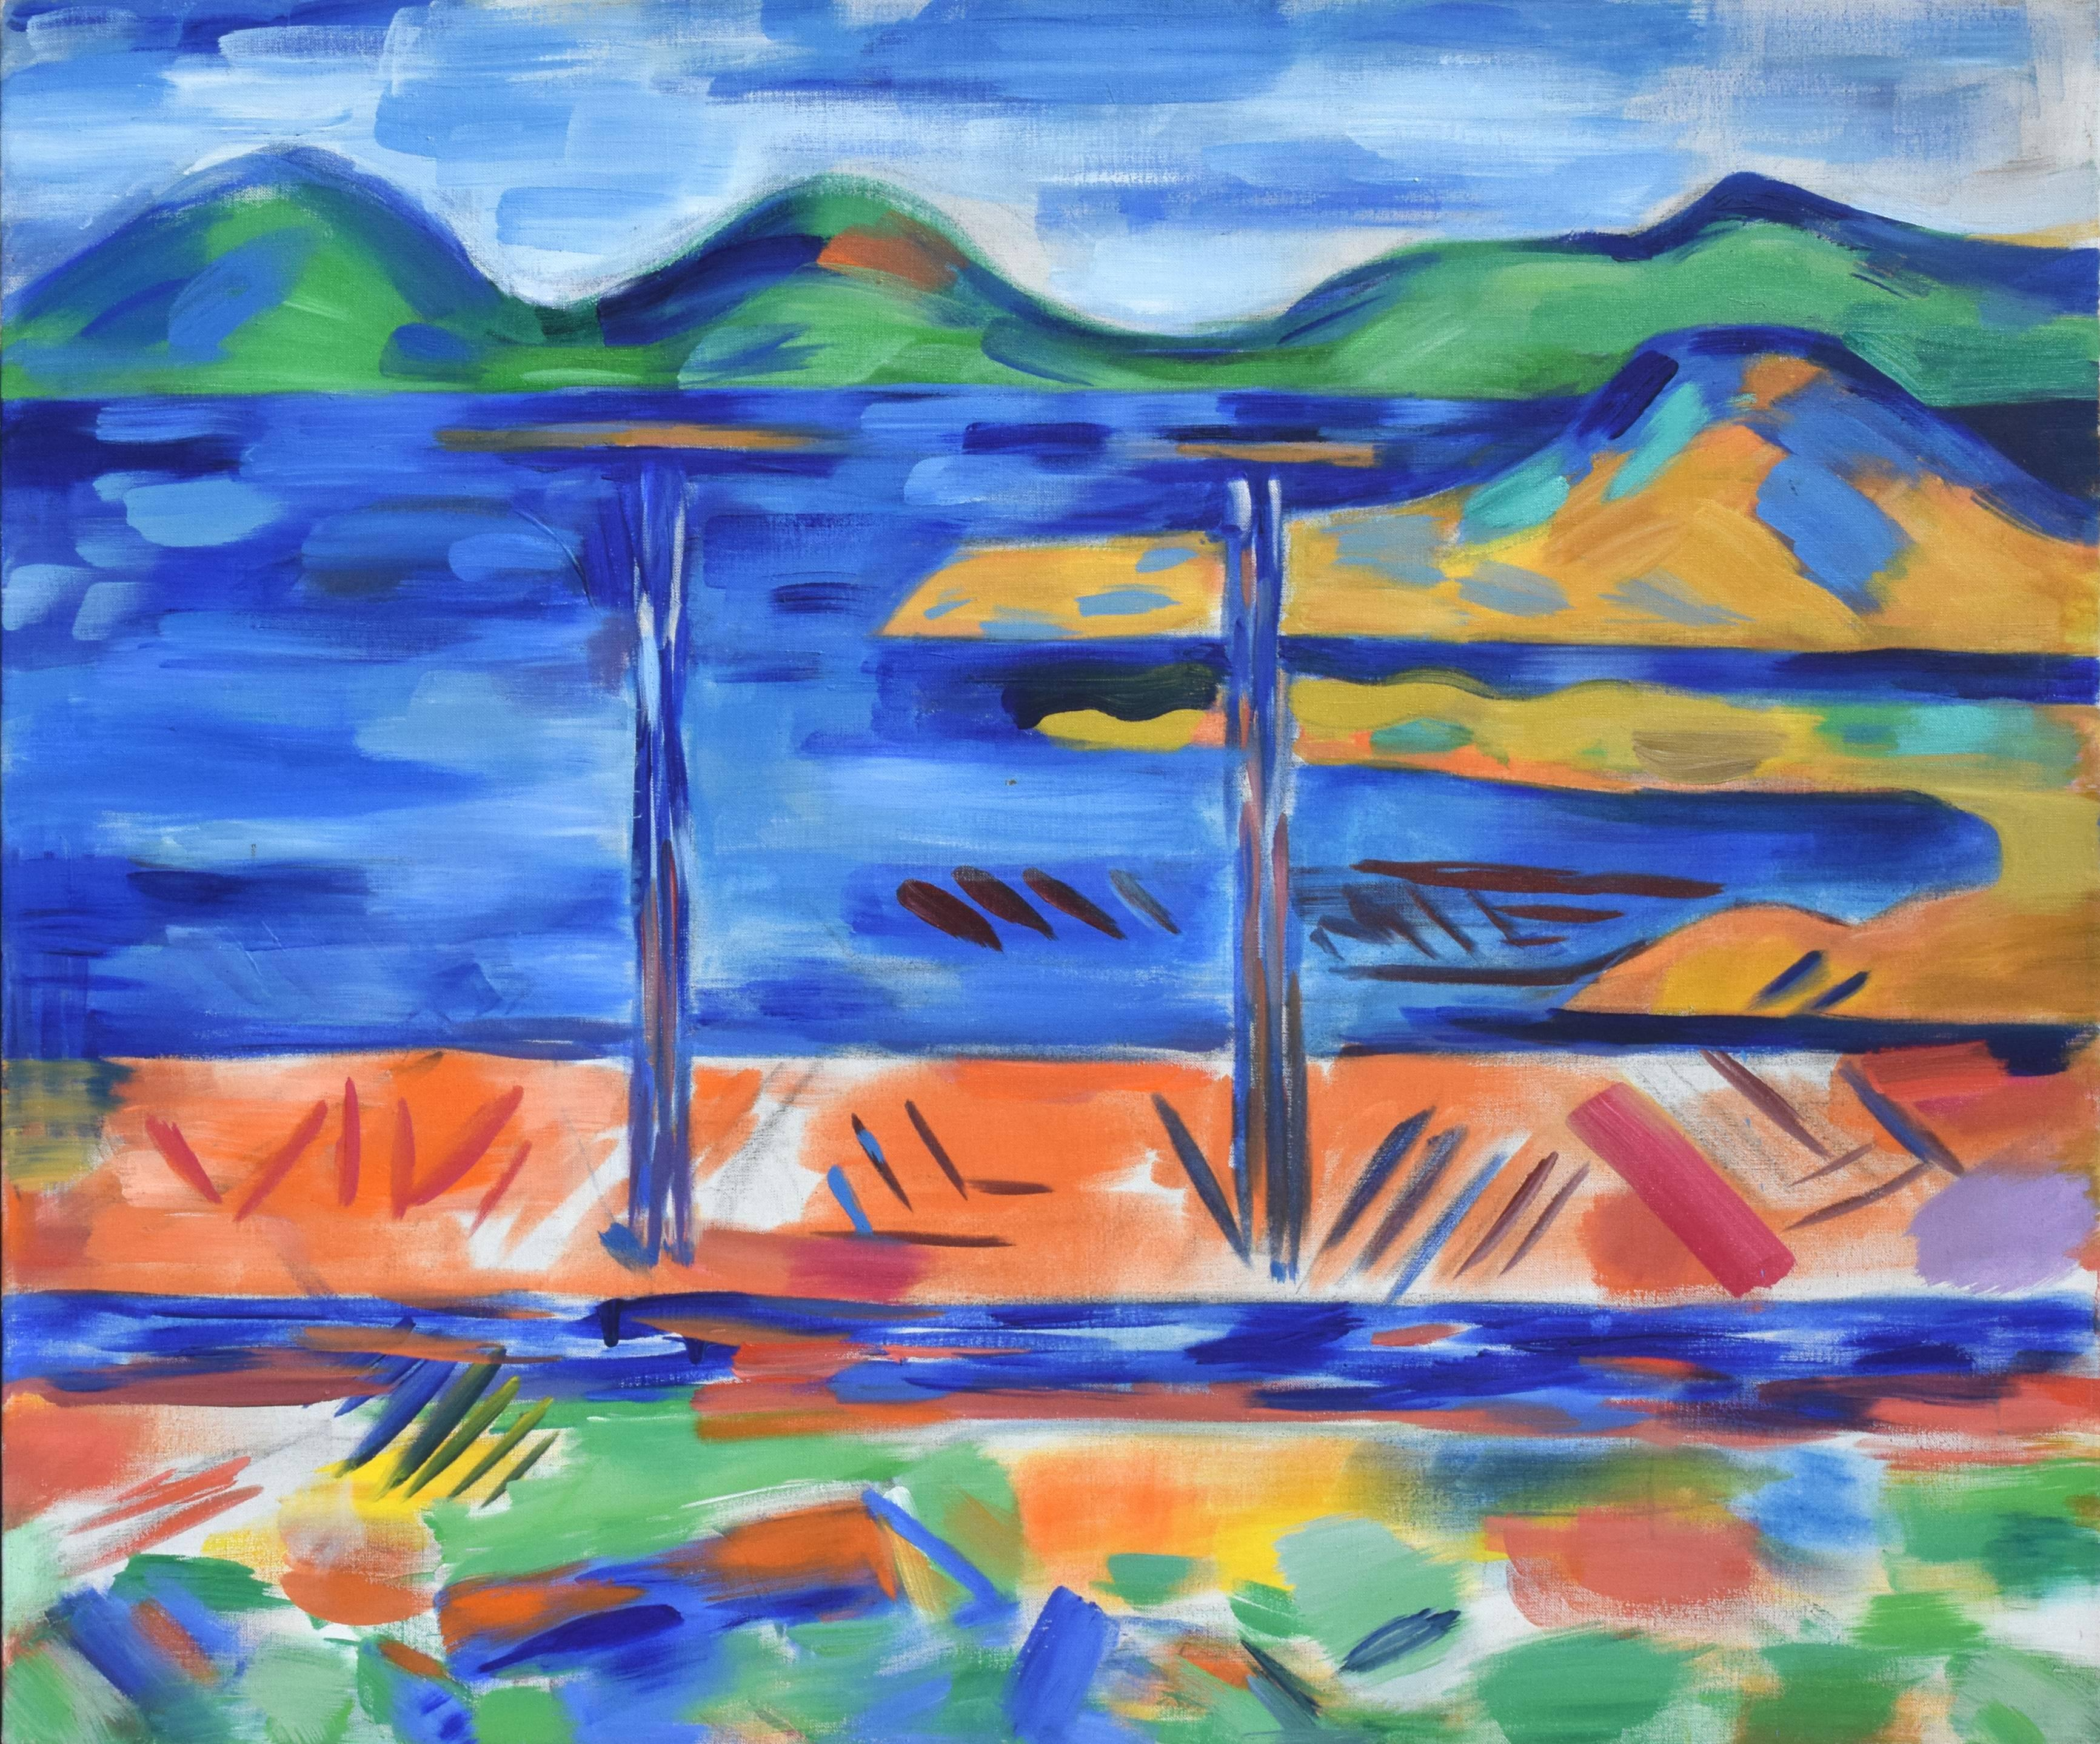 Oakland to Tamalpais Views - Fauvist Abstracted Landscape